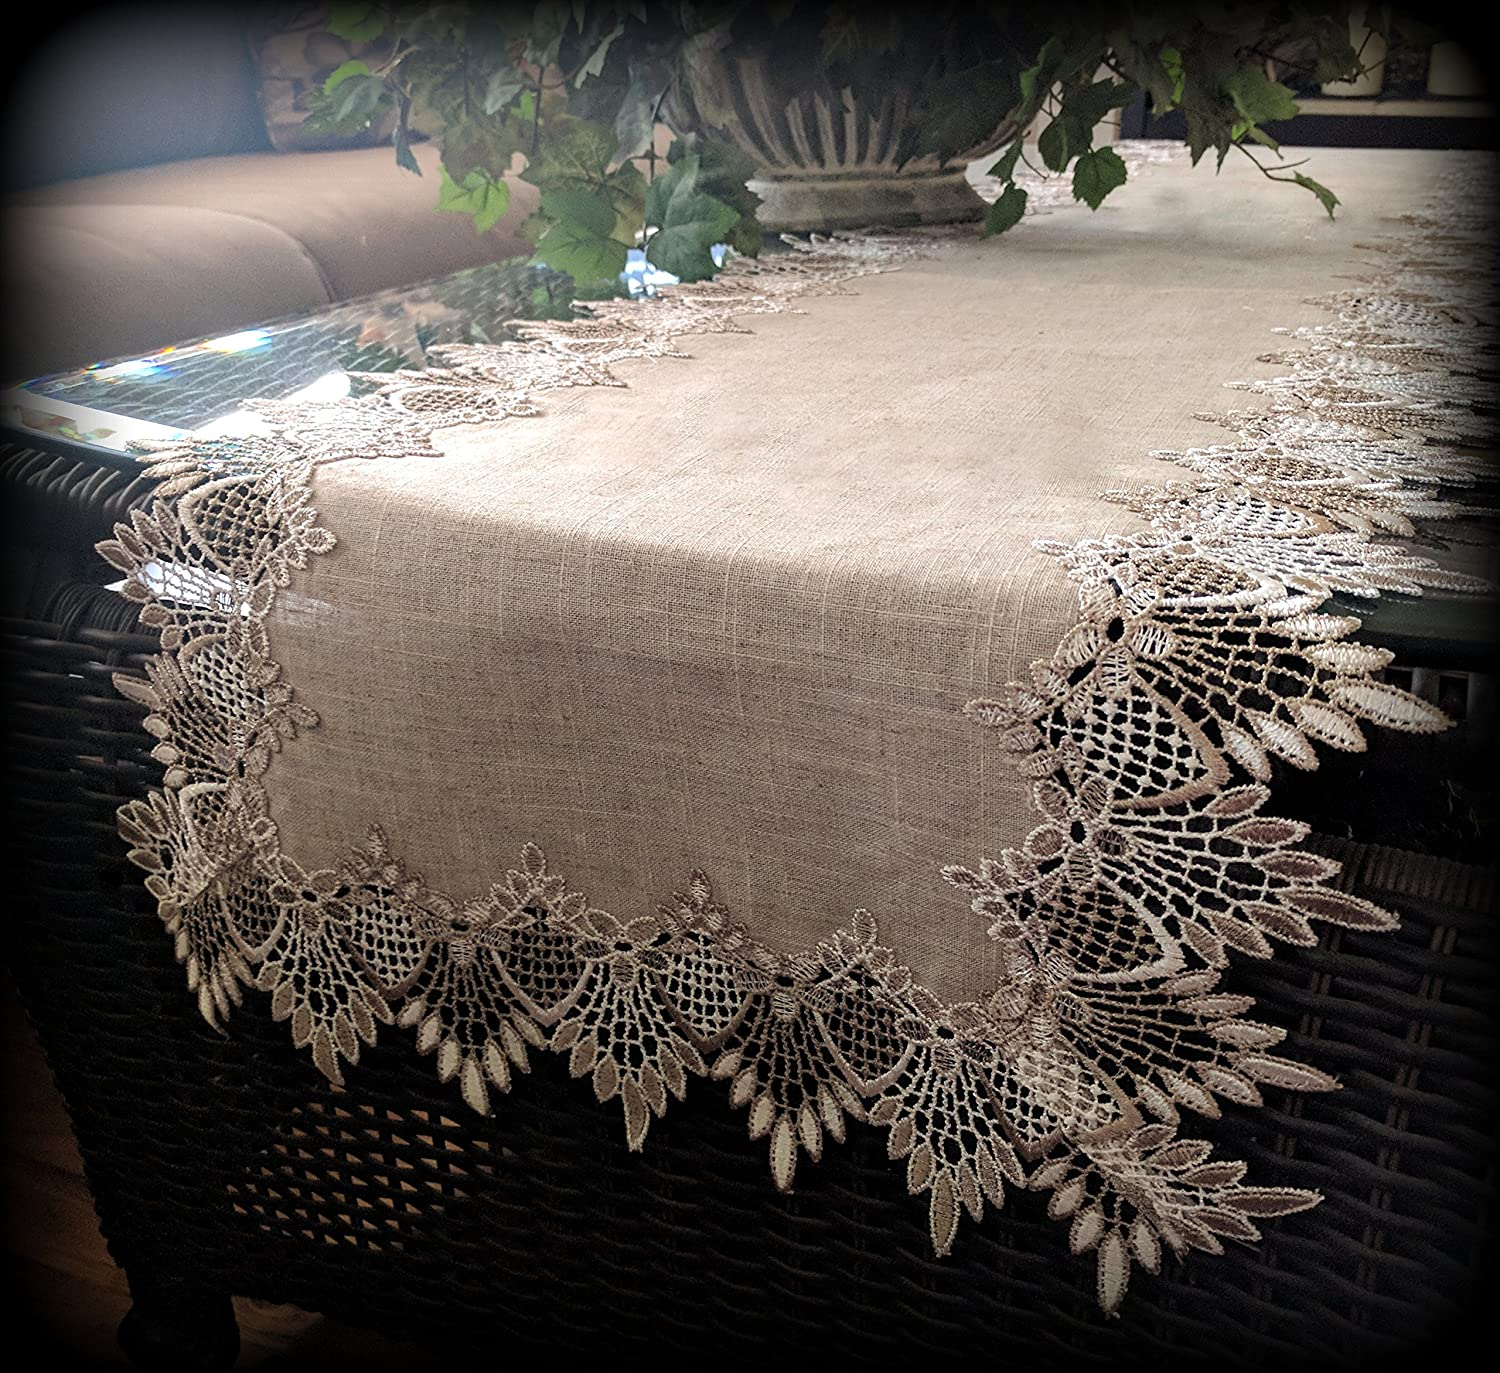 European Lace Neutral Earth Tones Doily Table Runner